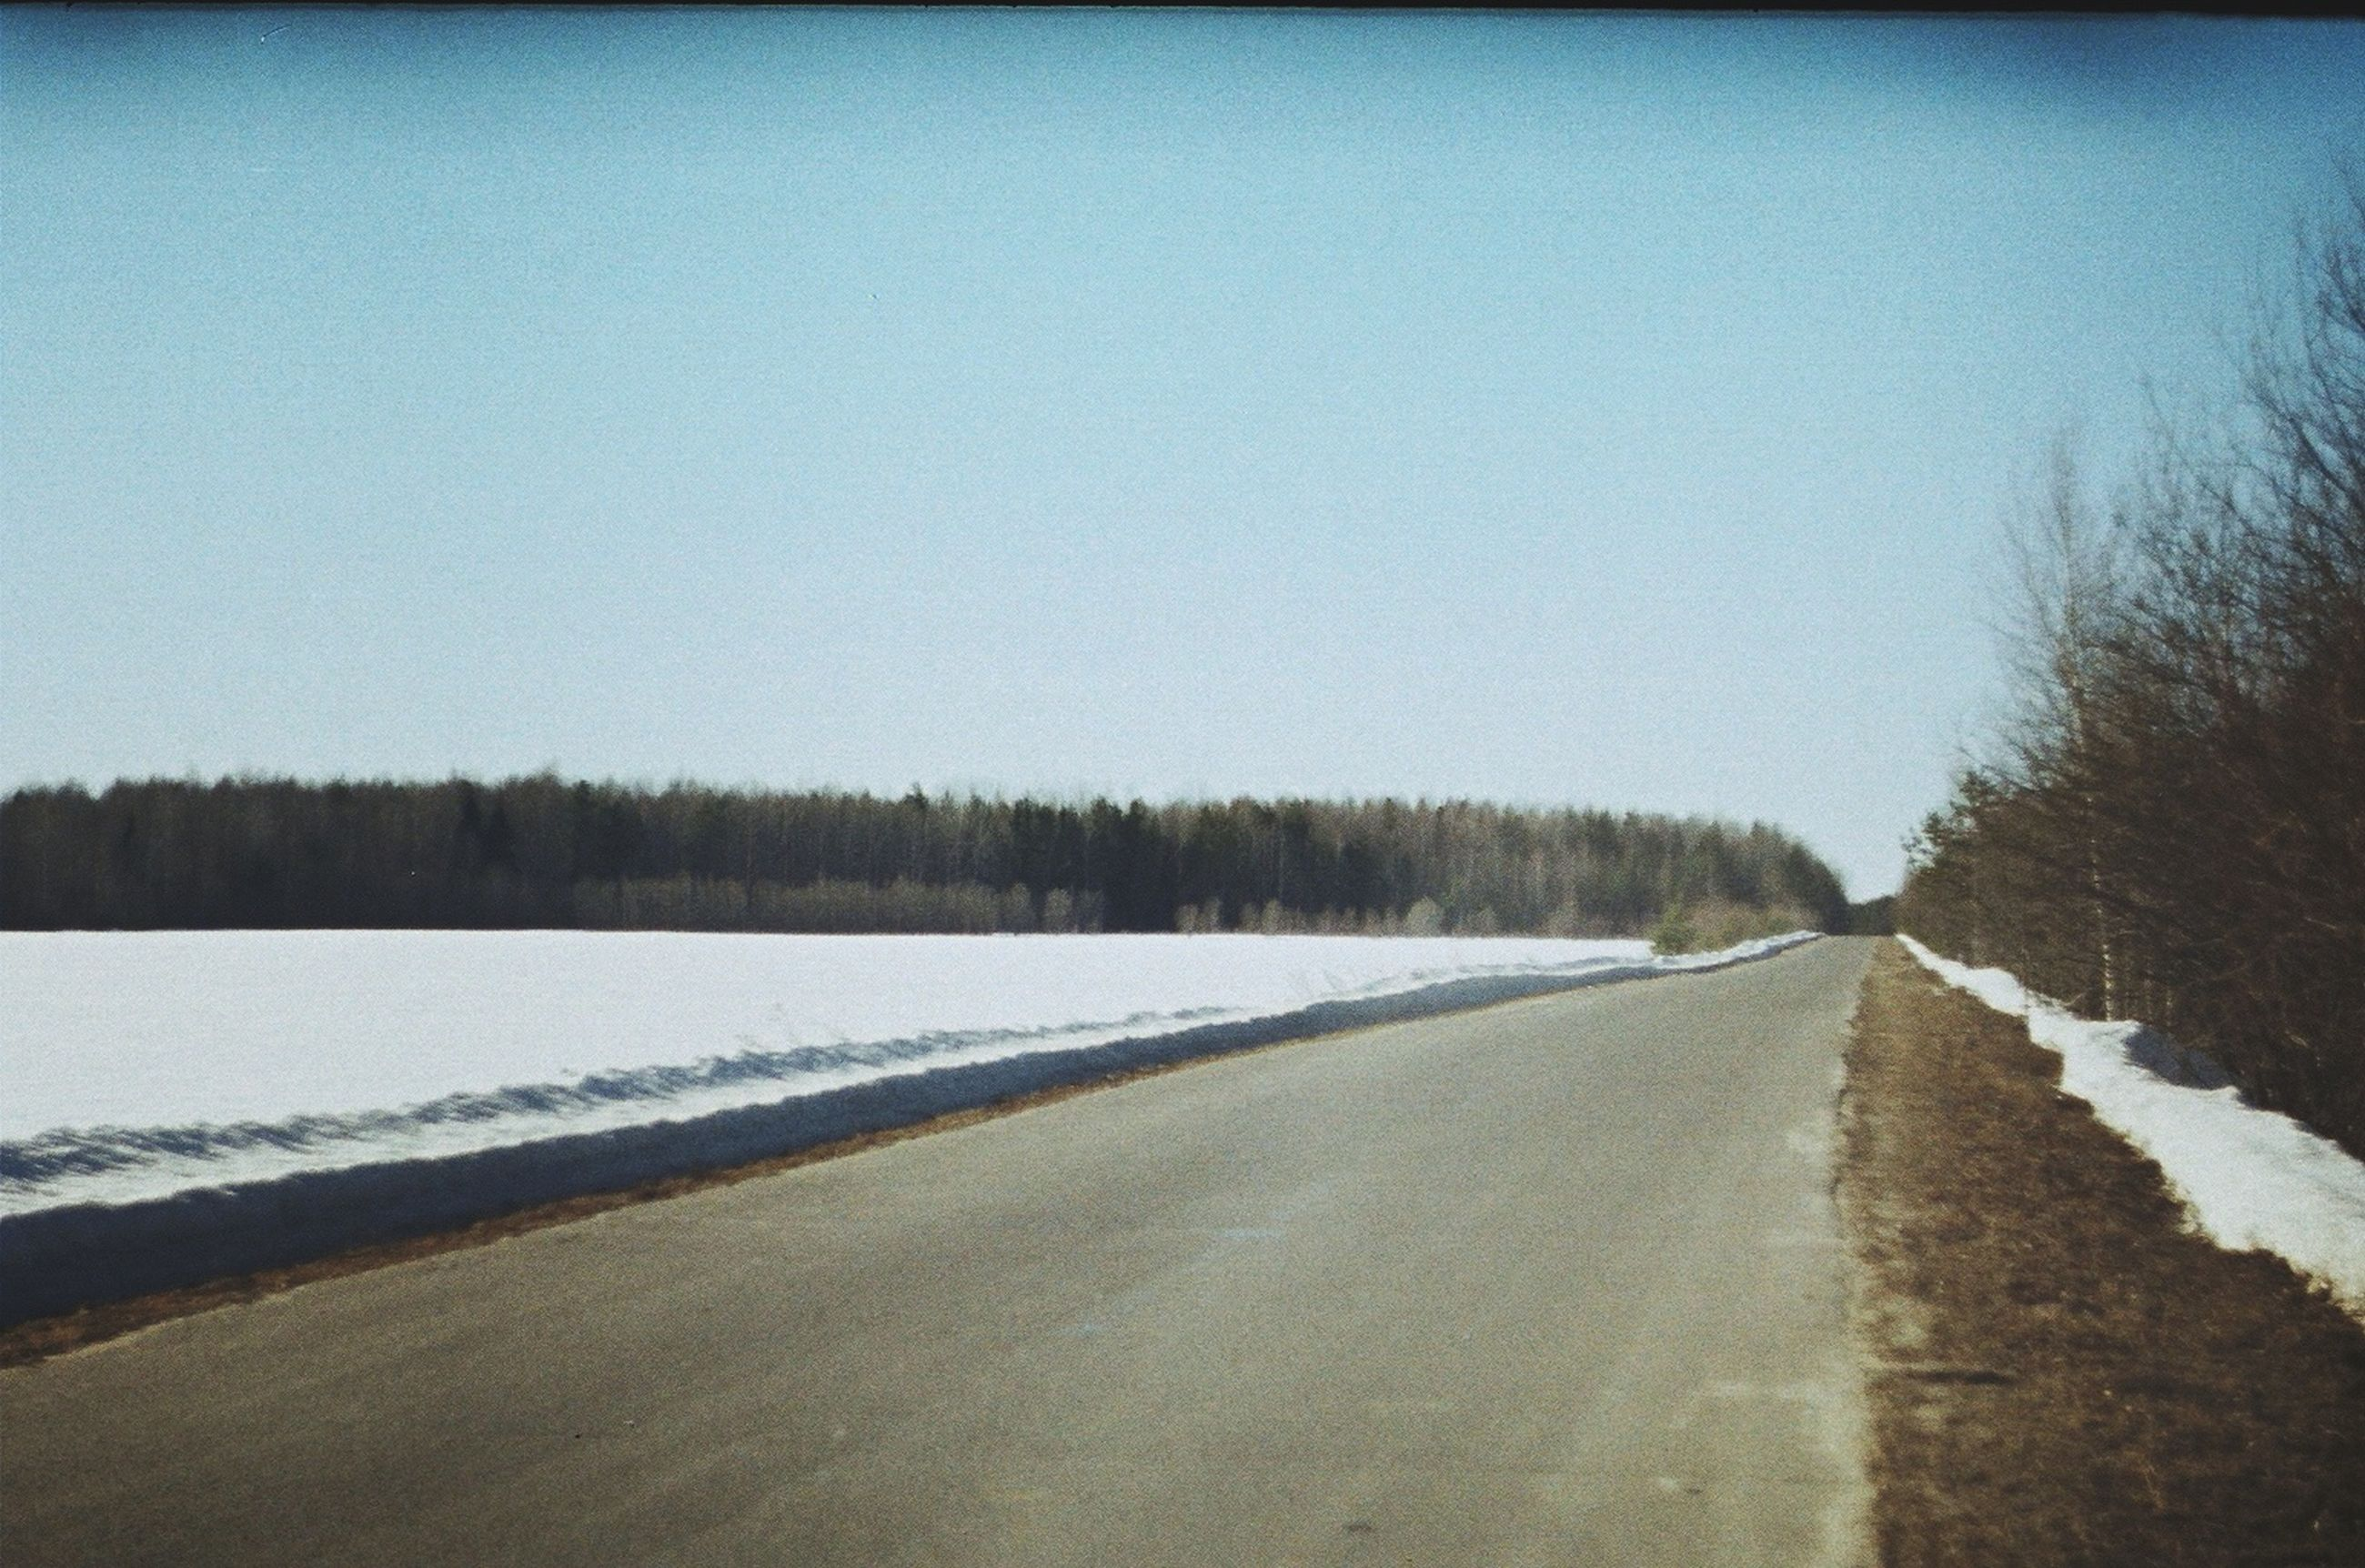 snow, winter, the way forward, cold temperature, road, clear sky, diminishing perspective, transportation, vanishing point, season, copy space, tranquil scene, tree, weather, tranquility, nature, landscape, country road, covering, beauty in nature